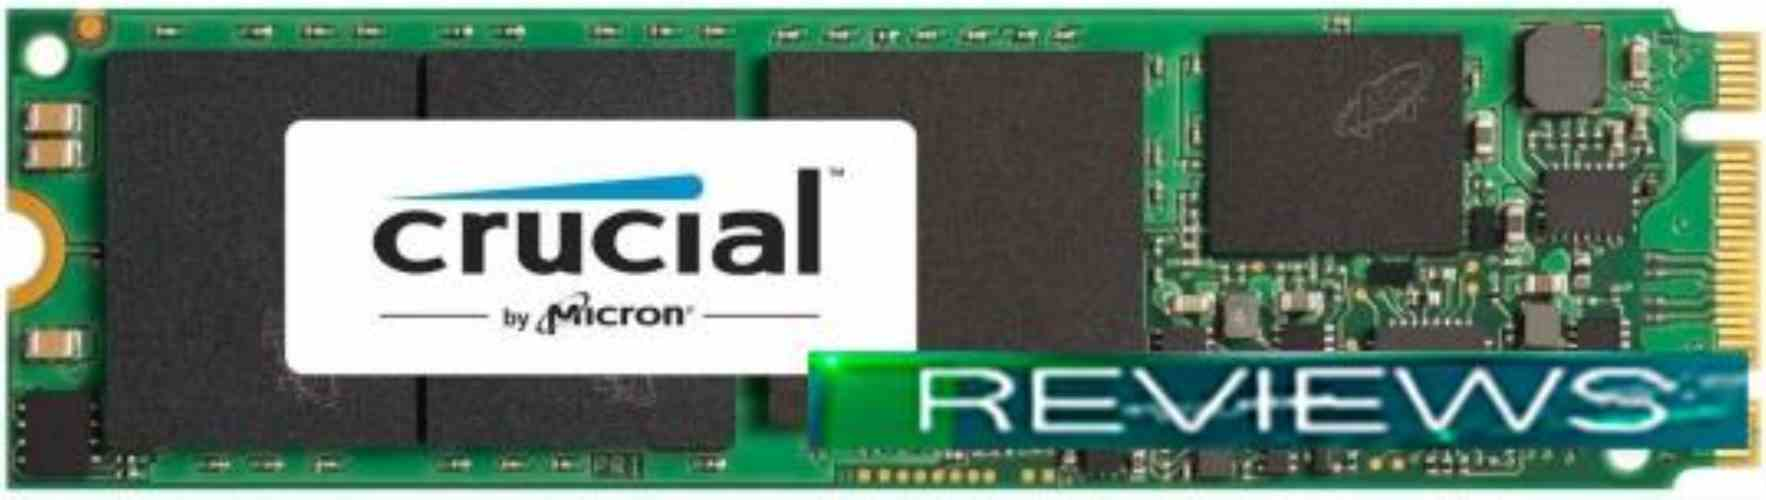 Crucial MX200 500GB (CT500MX200SSD4)